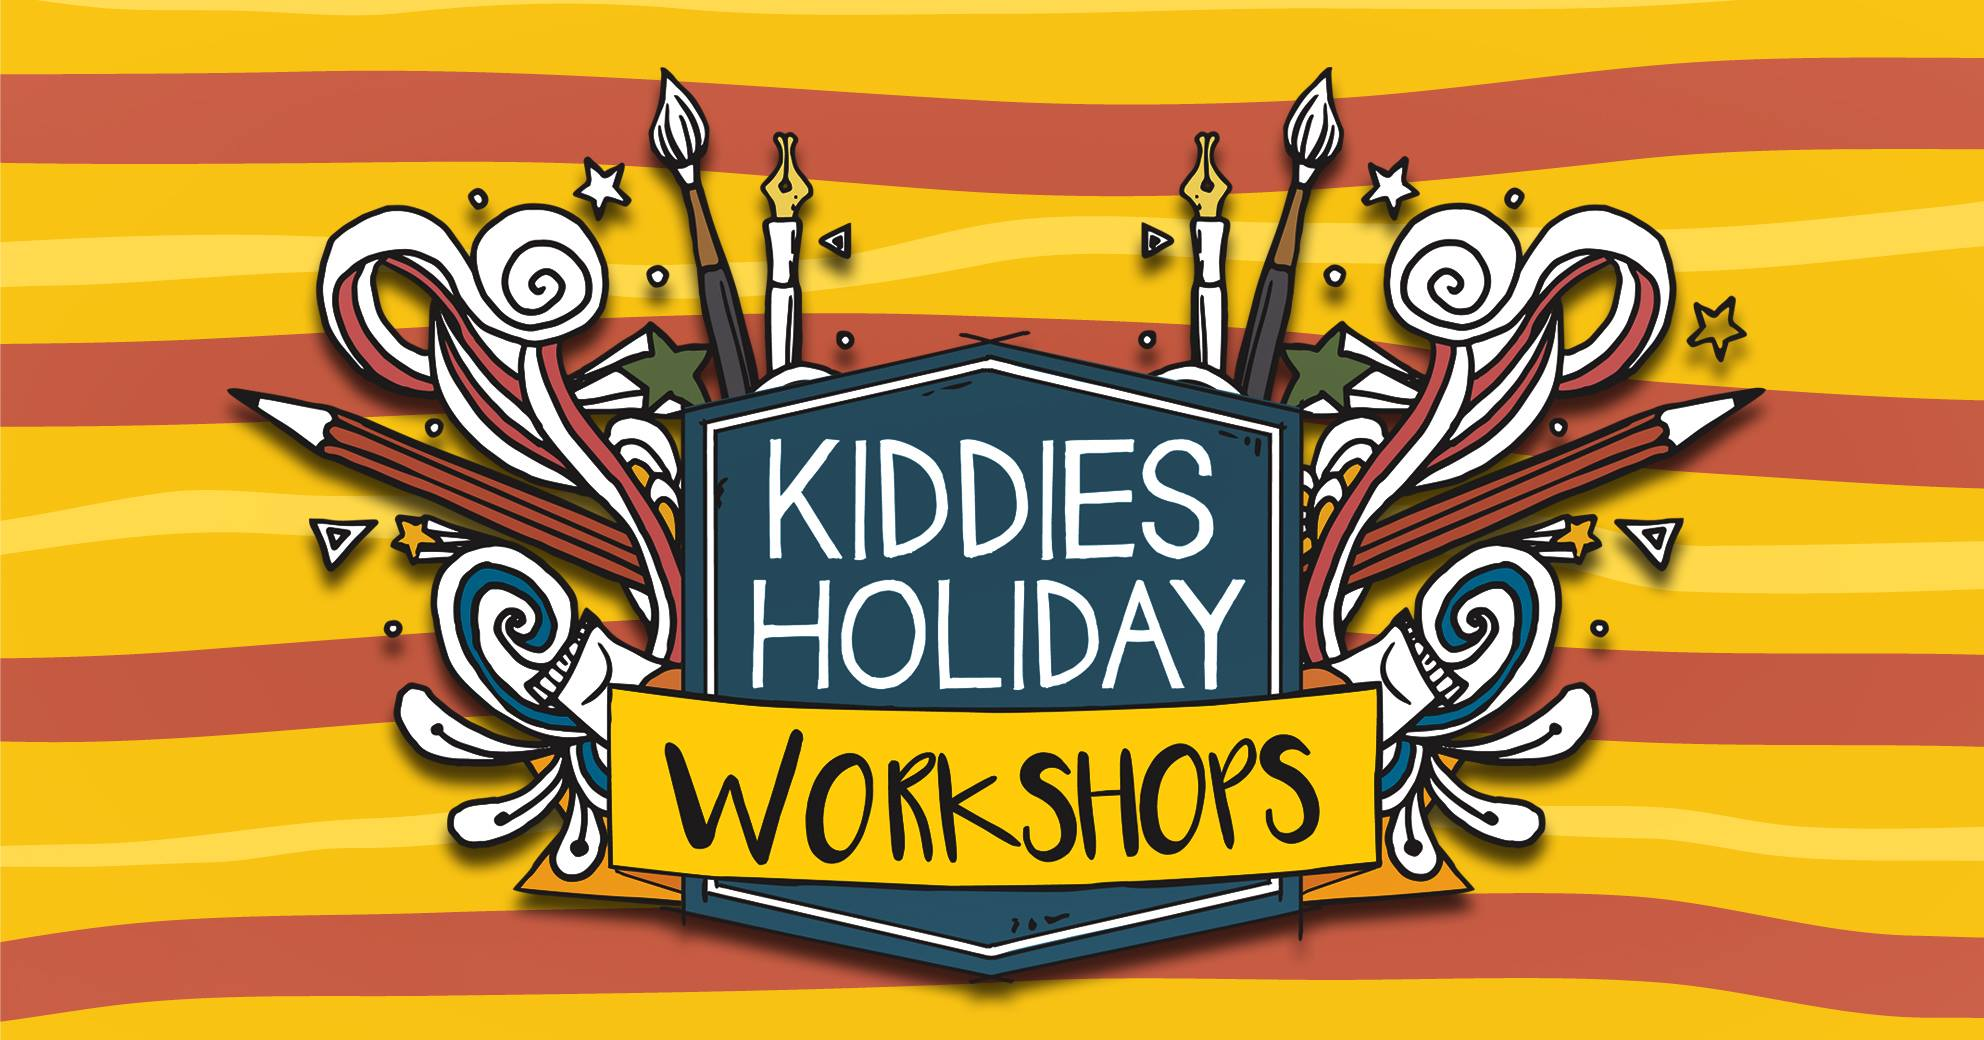 Kiddies Holiday Workshops at Oliewenhuis